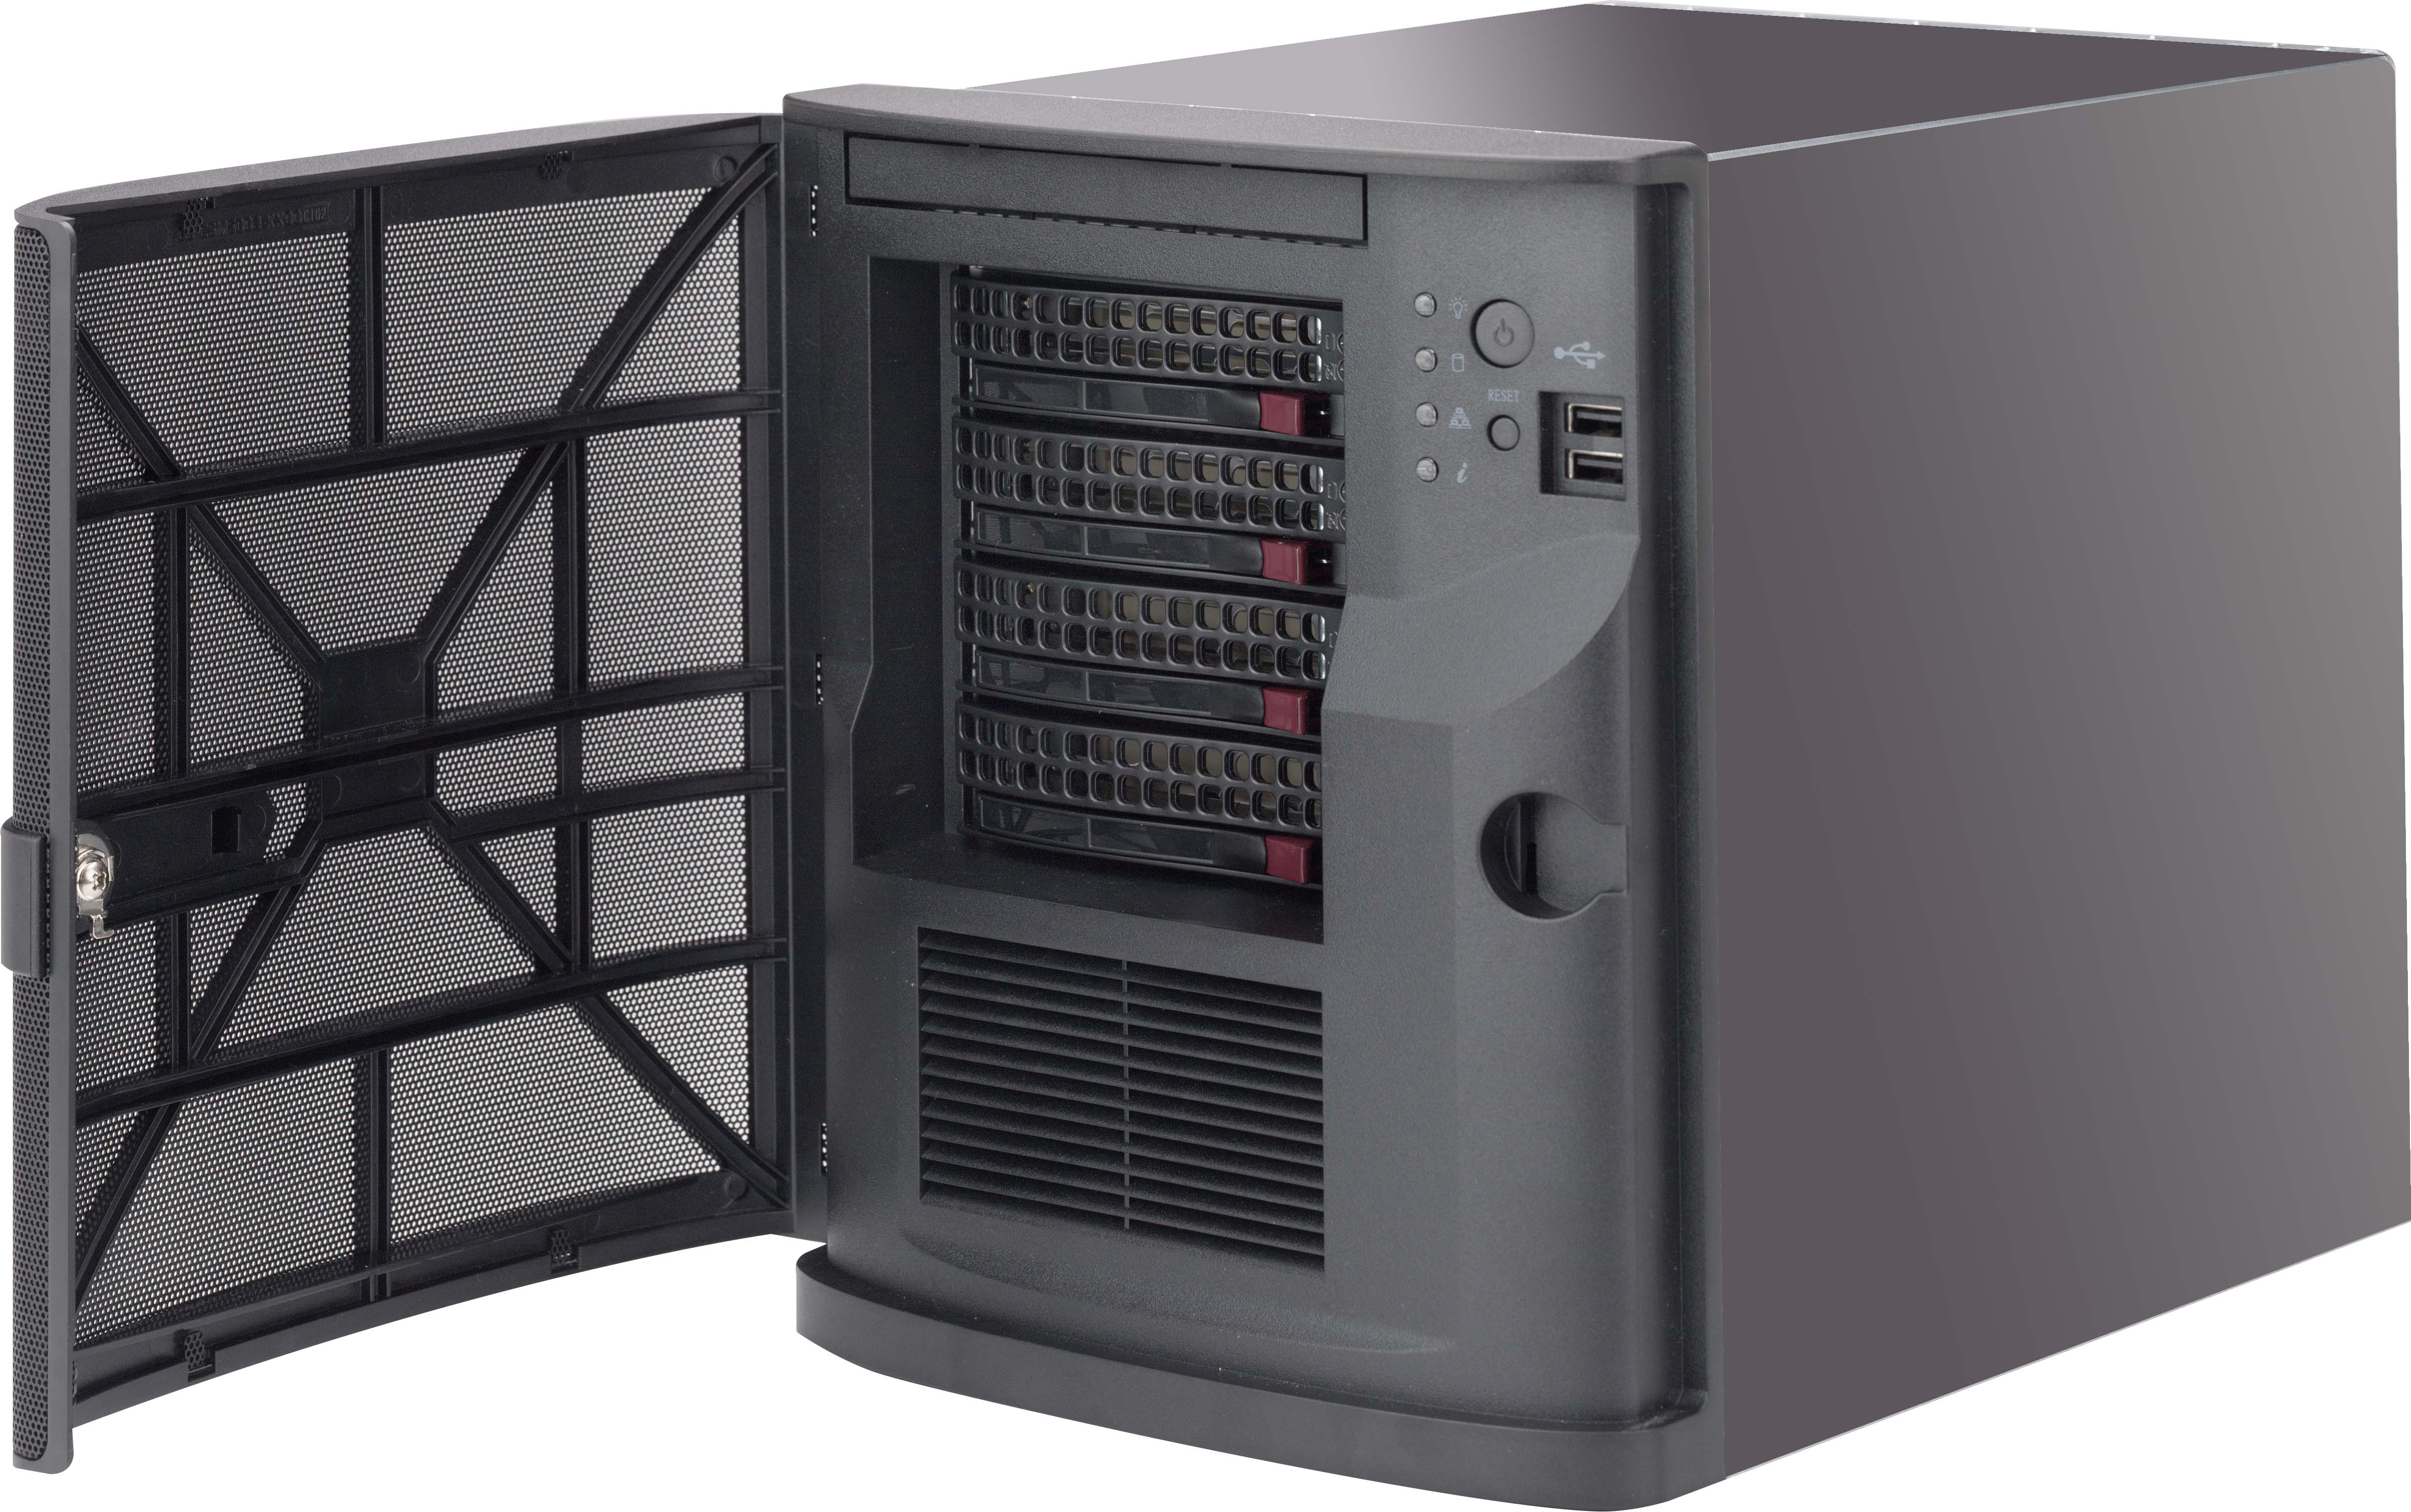 "Сервер SERVER T11Q17 OLDI Computers 0474091 Cube/i5/DDR4 8gb/no HDD up to 4x3,5"" HS/Eth 1Gb*2/vPro/250W"